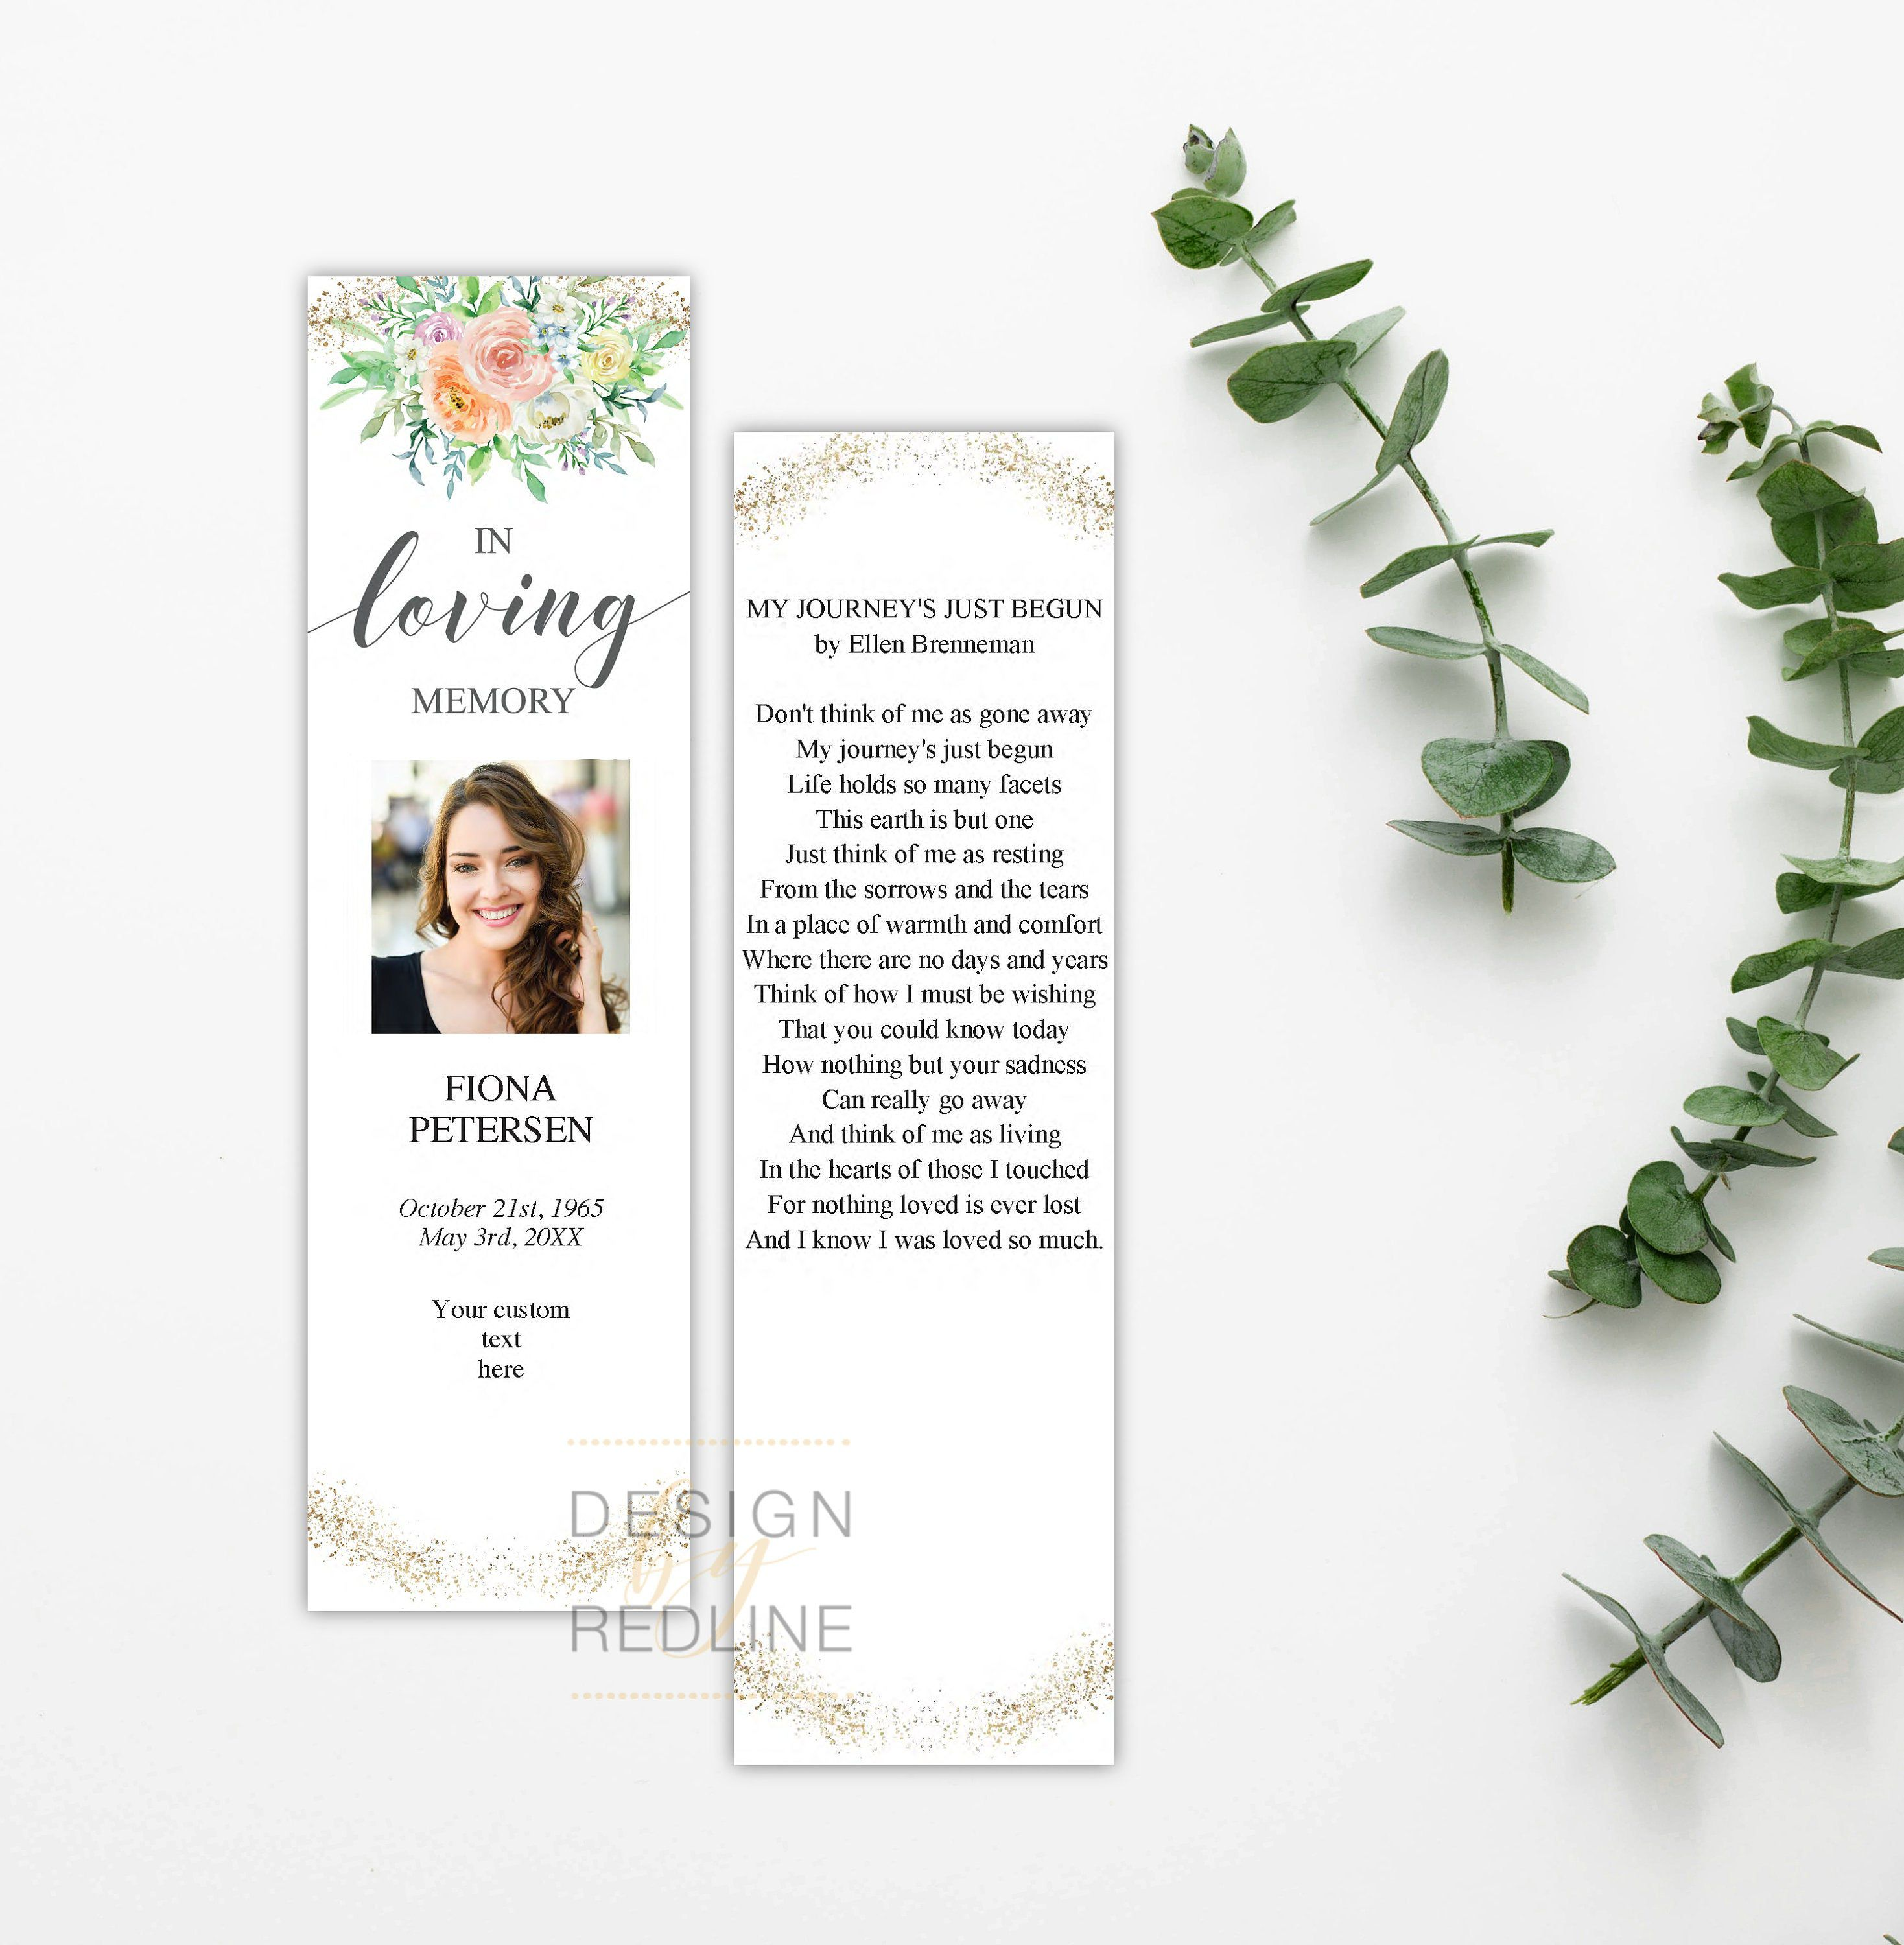 005 Surprising In Loving Memory Bookmark Template Free Download Concept Full